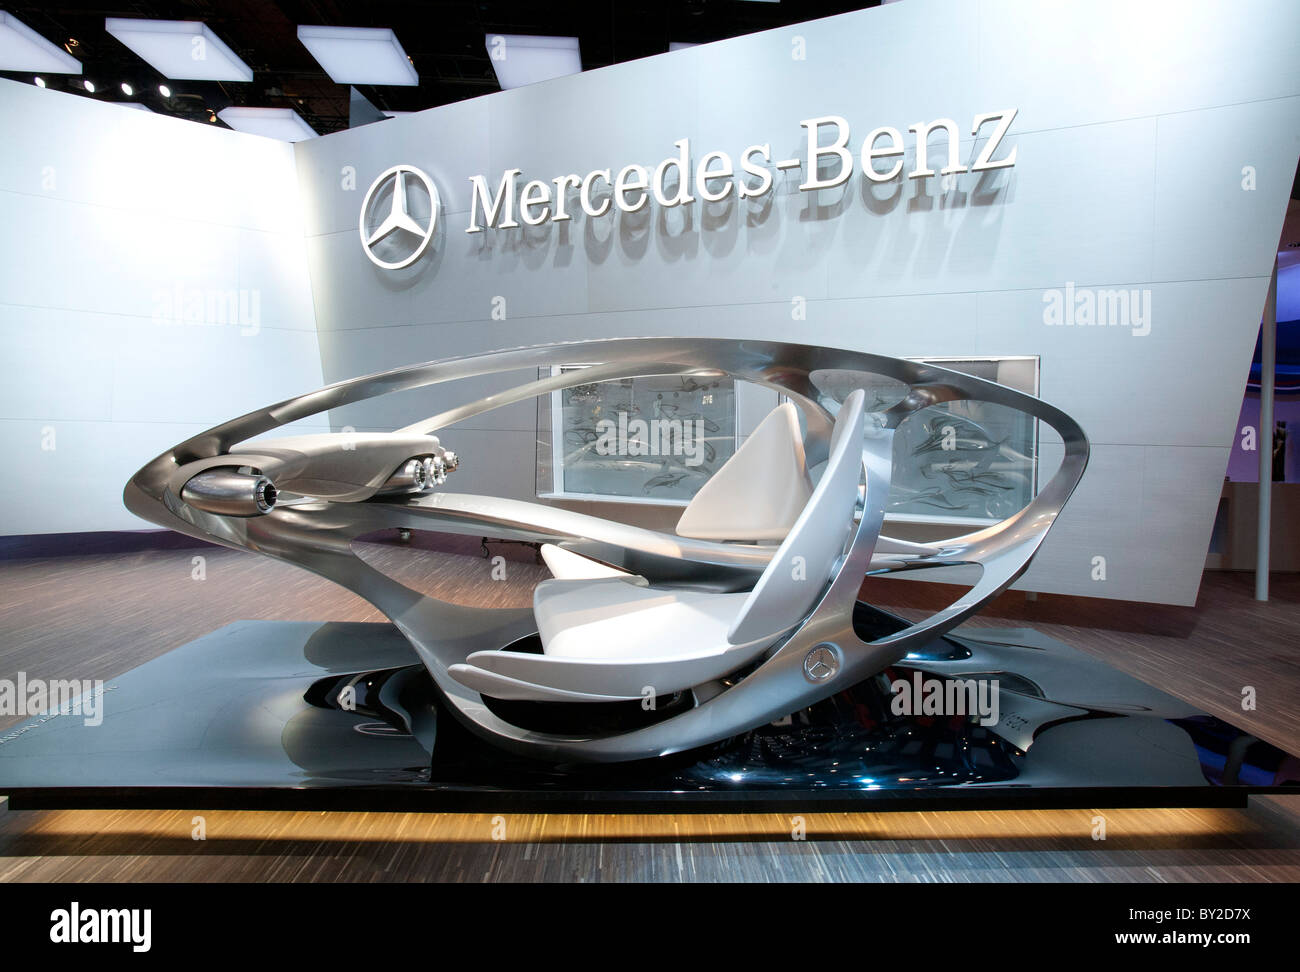 Detroit, Michigan - Mercedes-Benz Aesthetics No. 2 sculpture on display at the North American International Auto - Stock Image